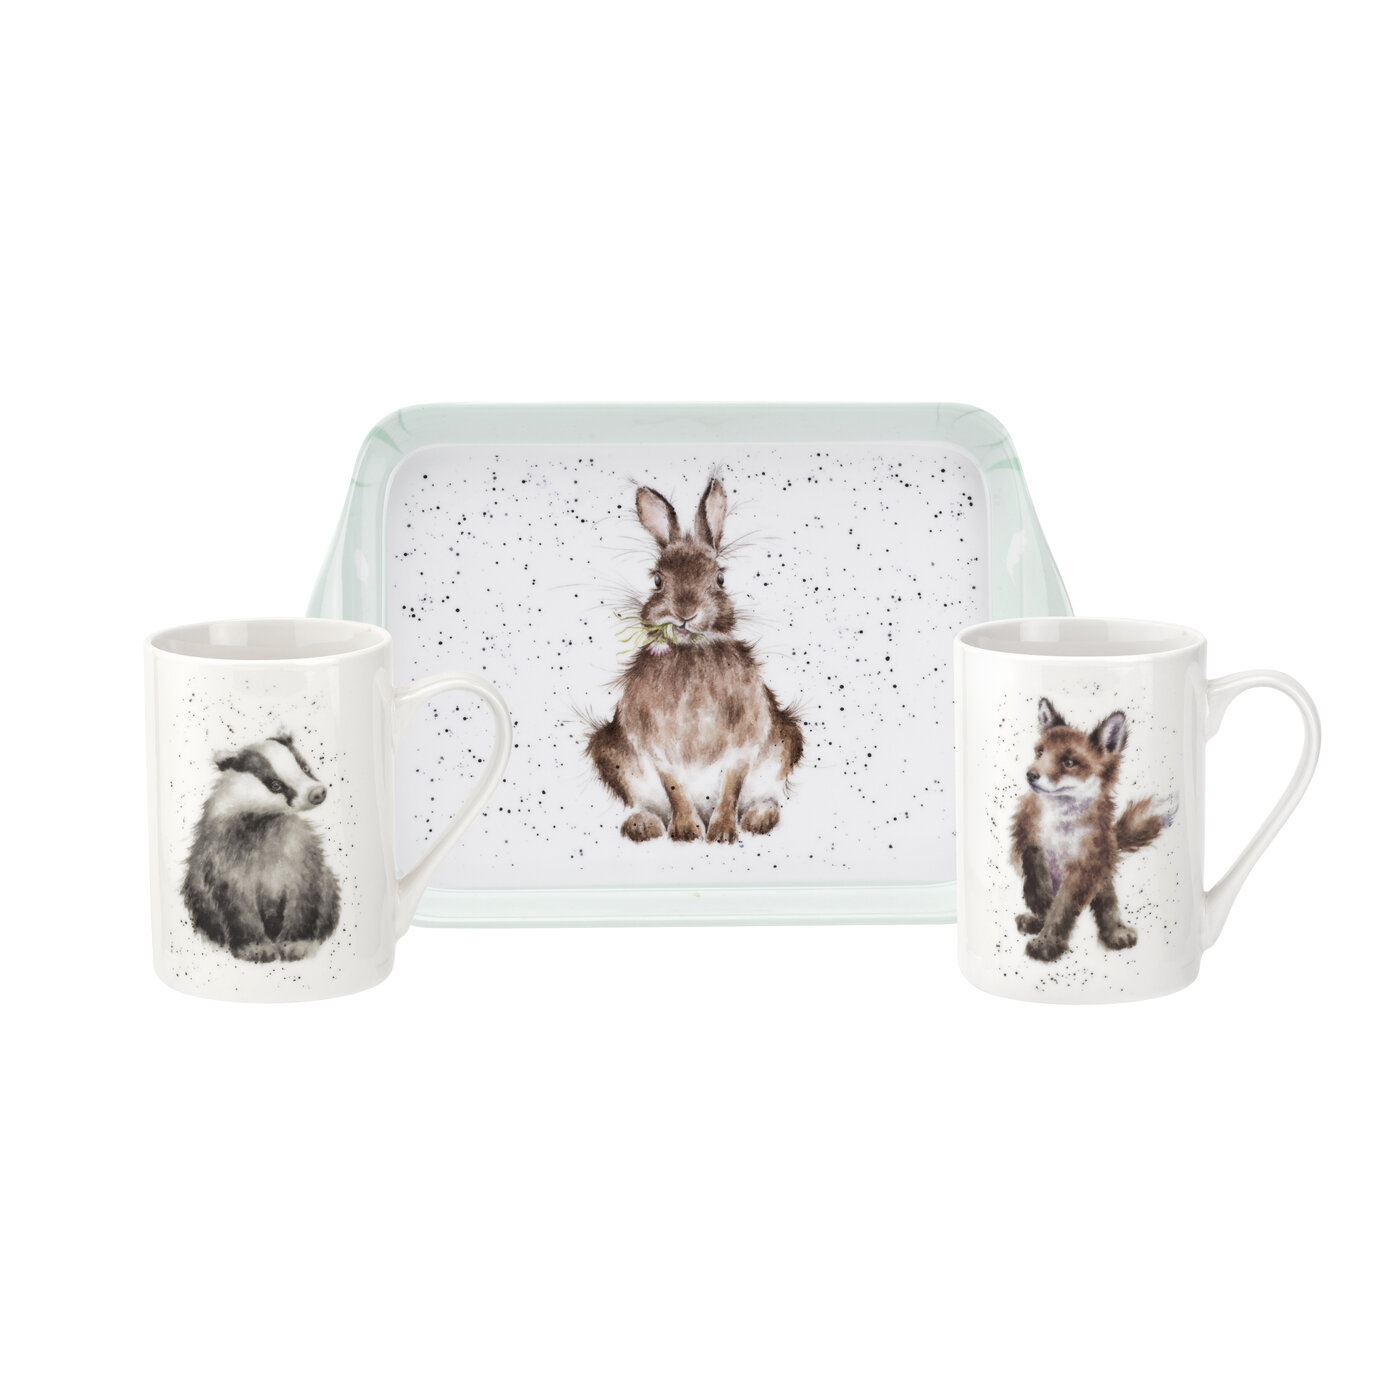 Pimpernel Wrendale Designs 3 Piece Mug & Tray Set (Woodland Friends) image number 0